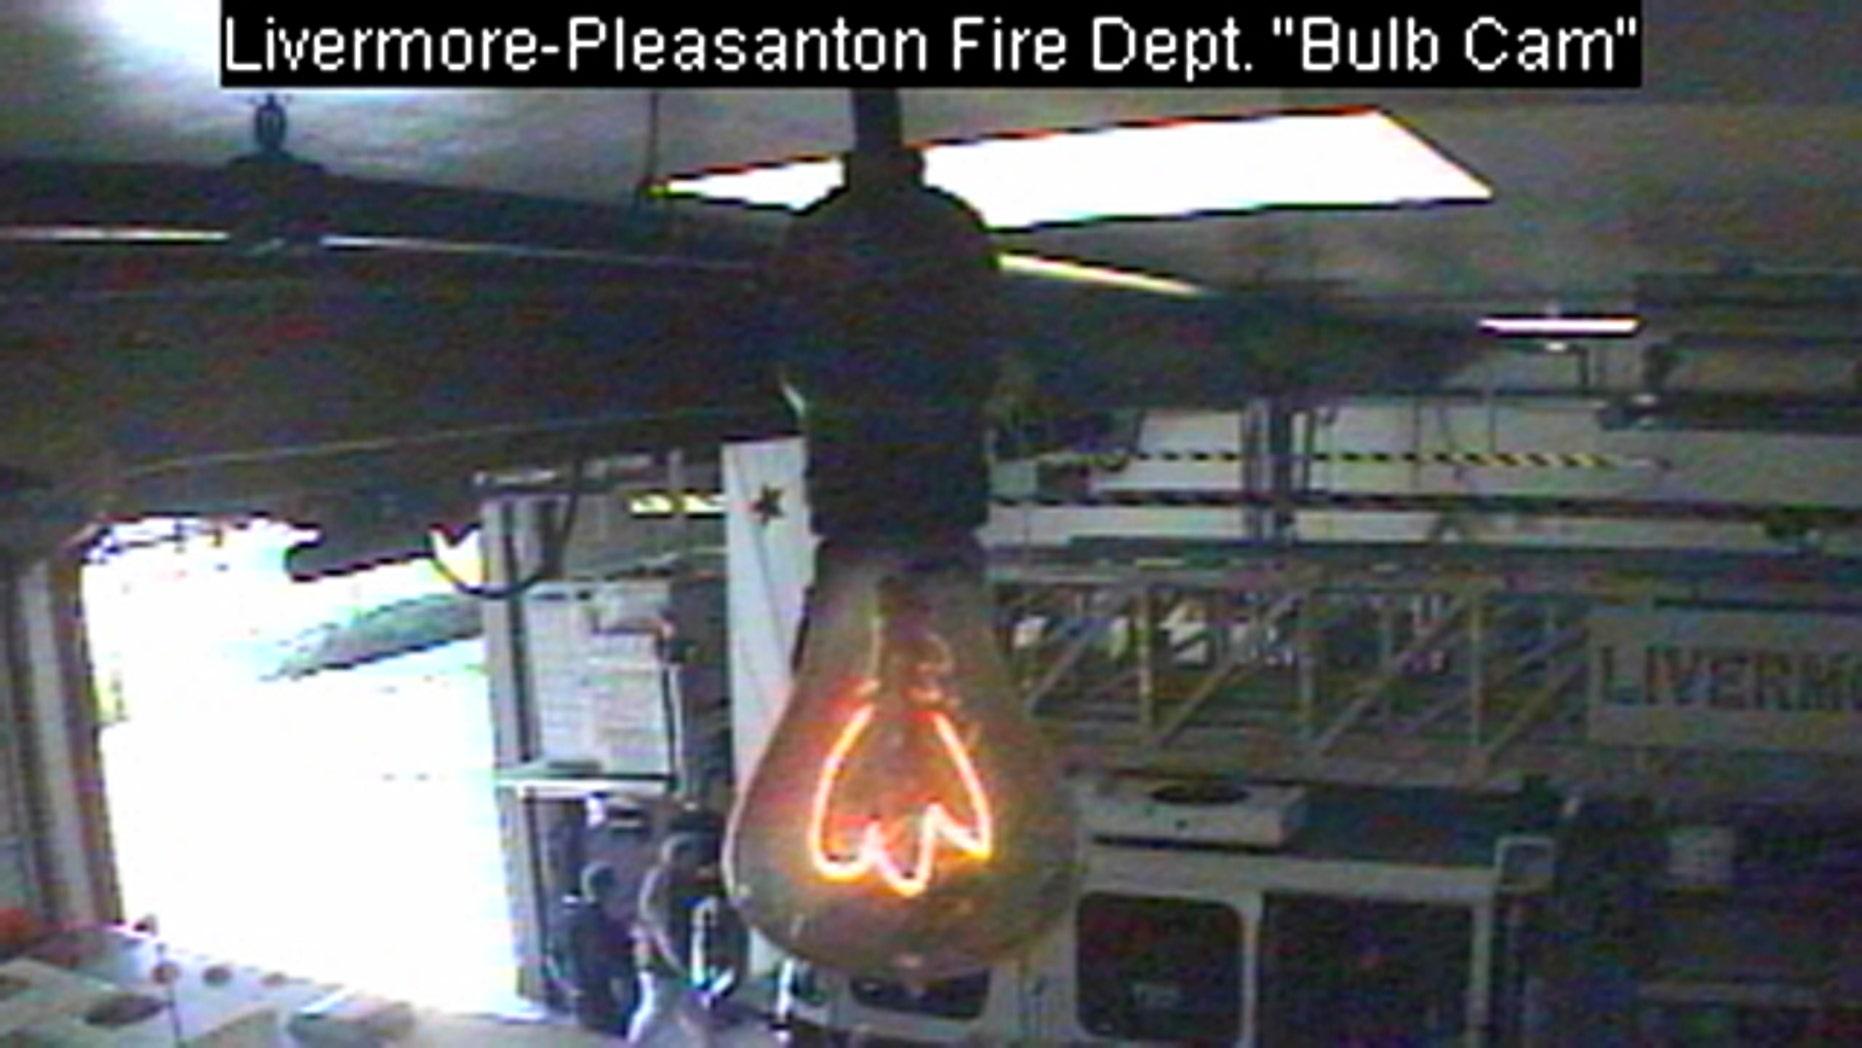 A frame from the Livermore-Pleasanton Dire Department's bulbcam shows the oldest lightbulb in the world, still glowing after all these years.